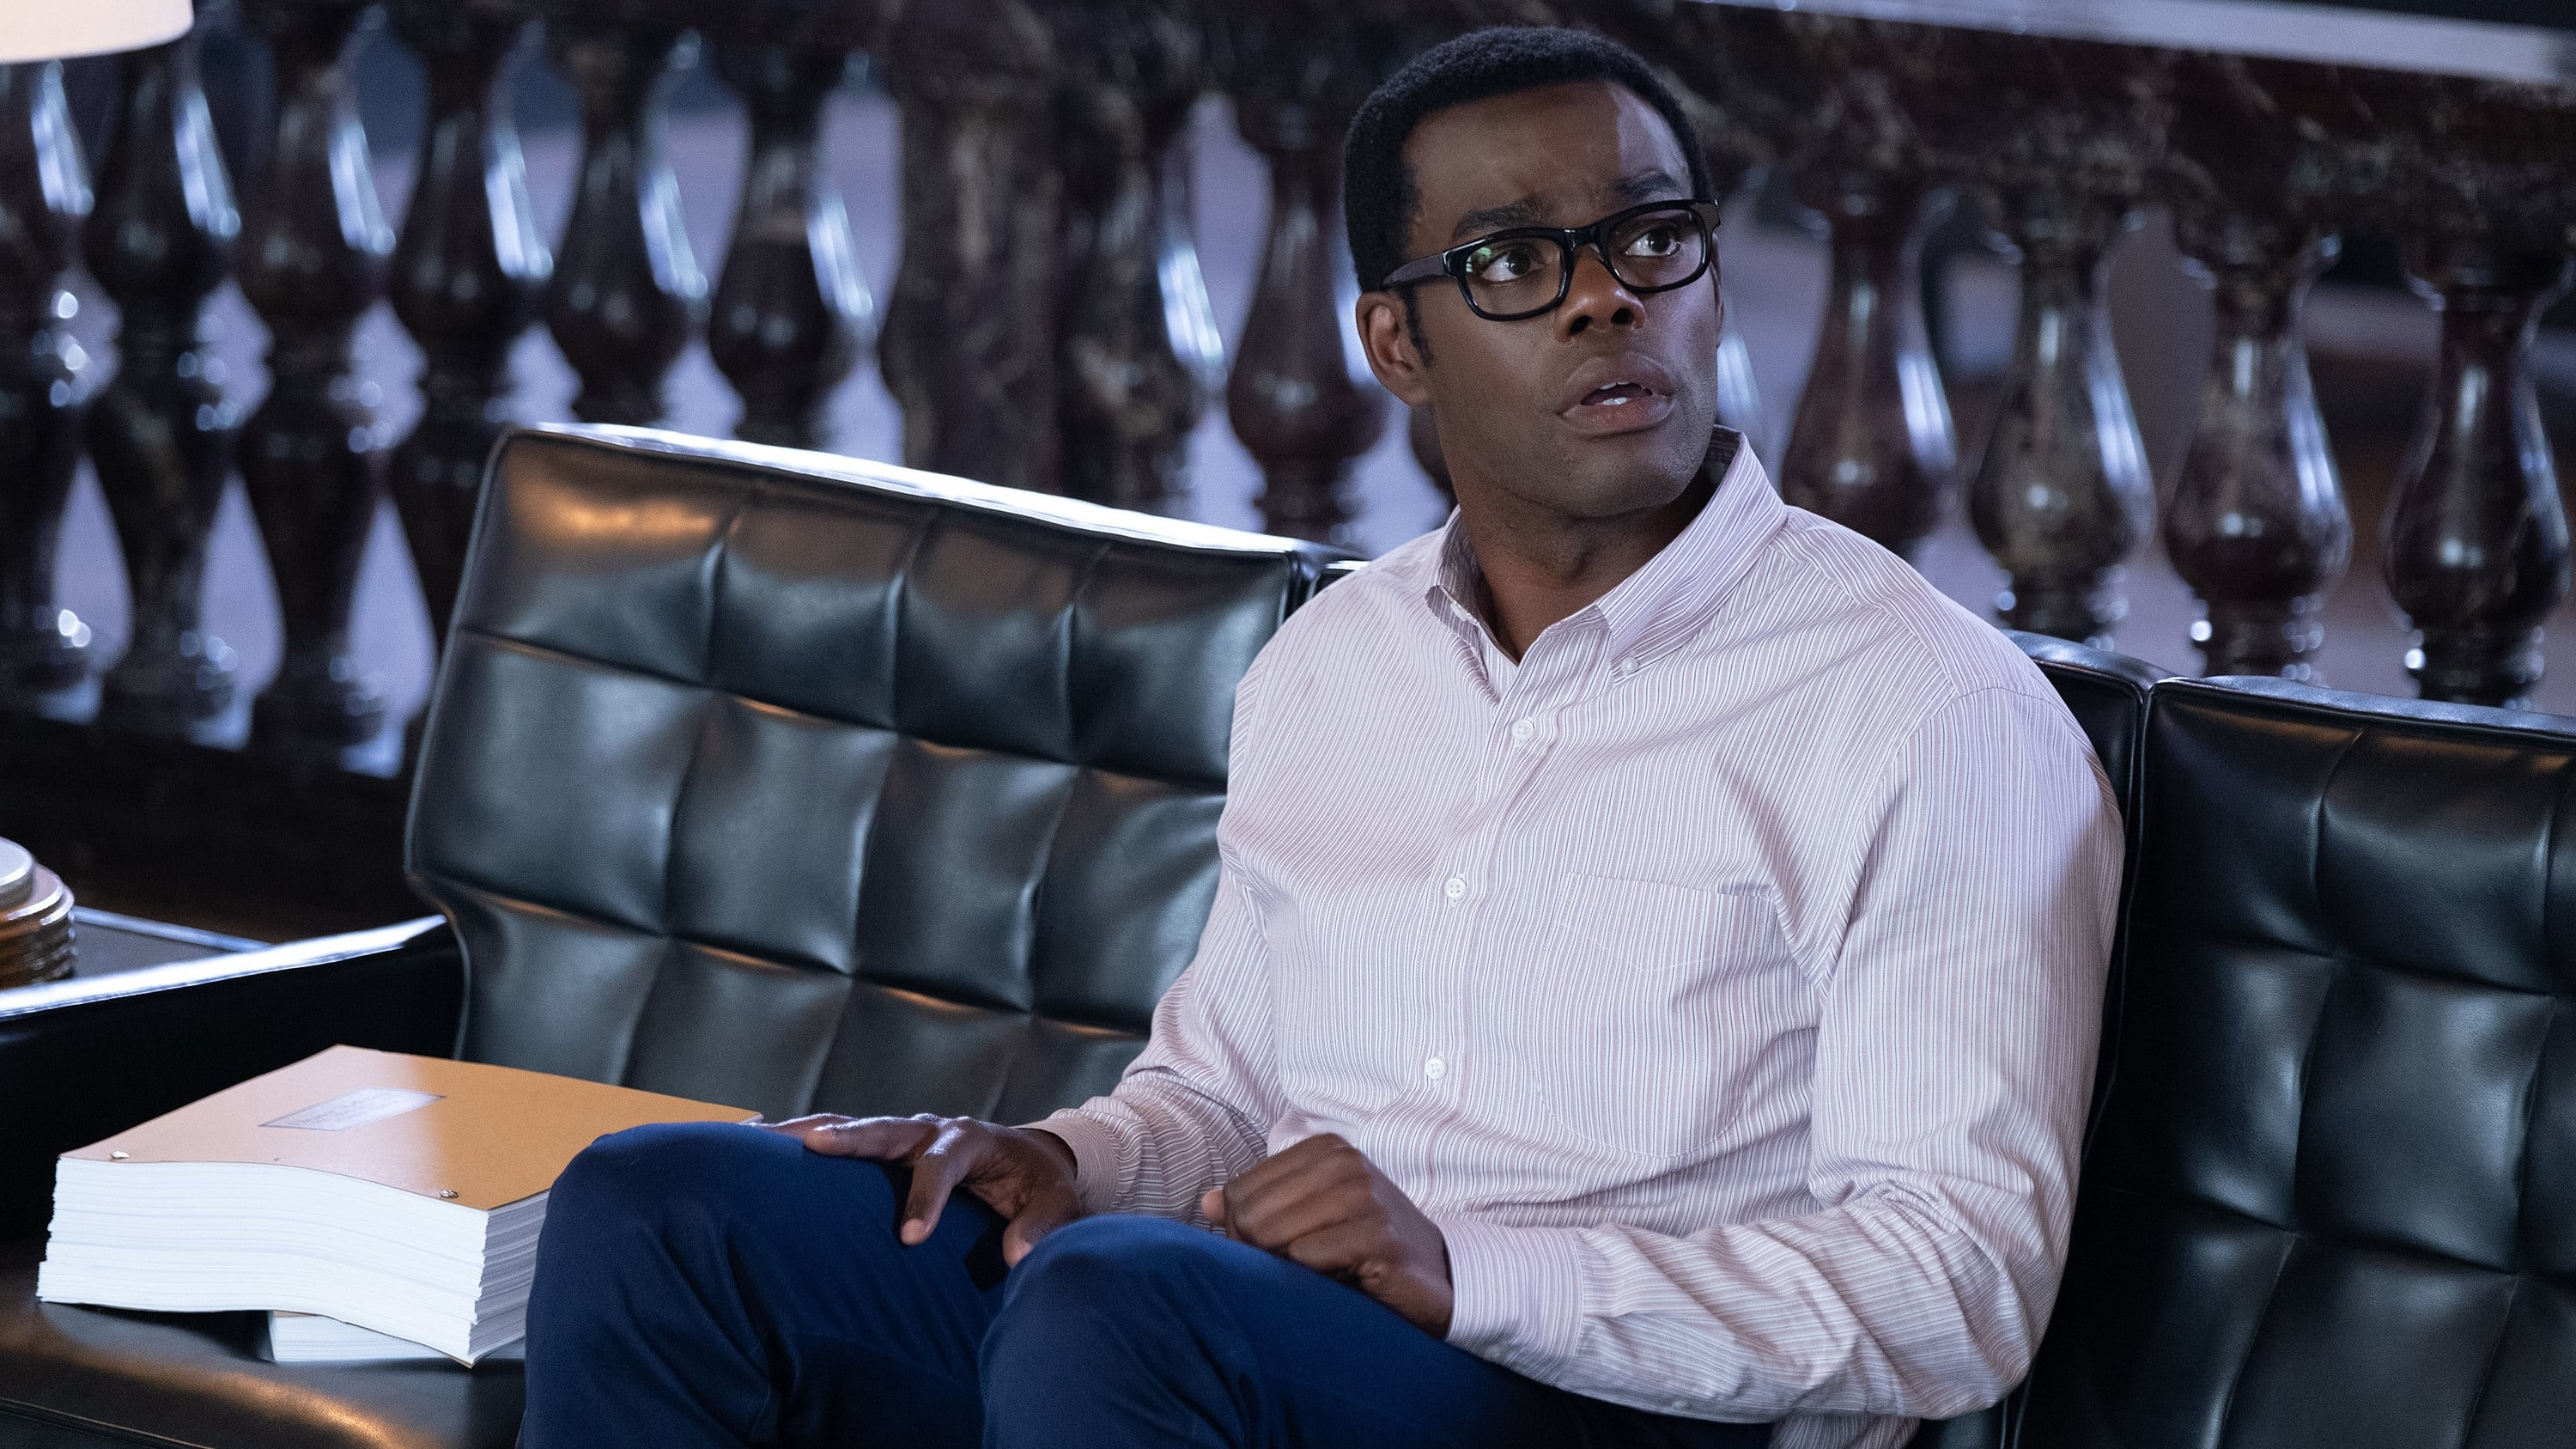 The Good Place - Season 4 Episode 11 : Mondays, Am I Right?